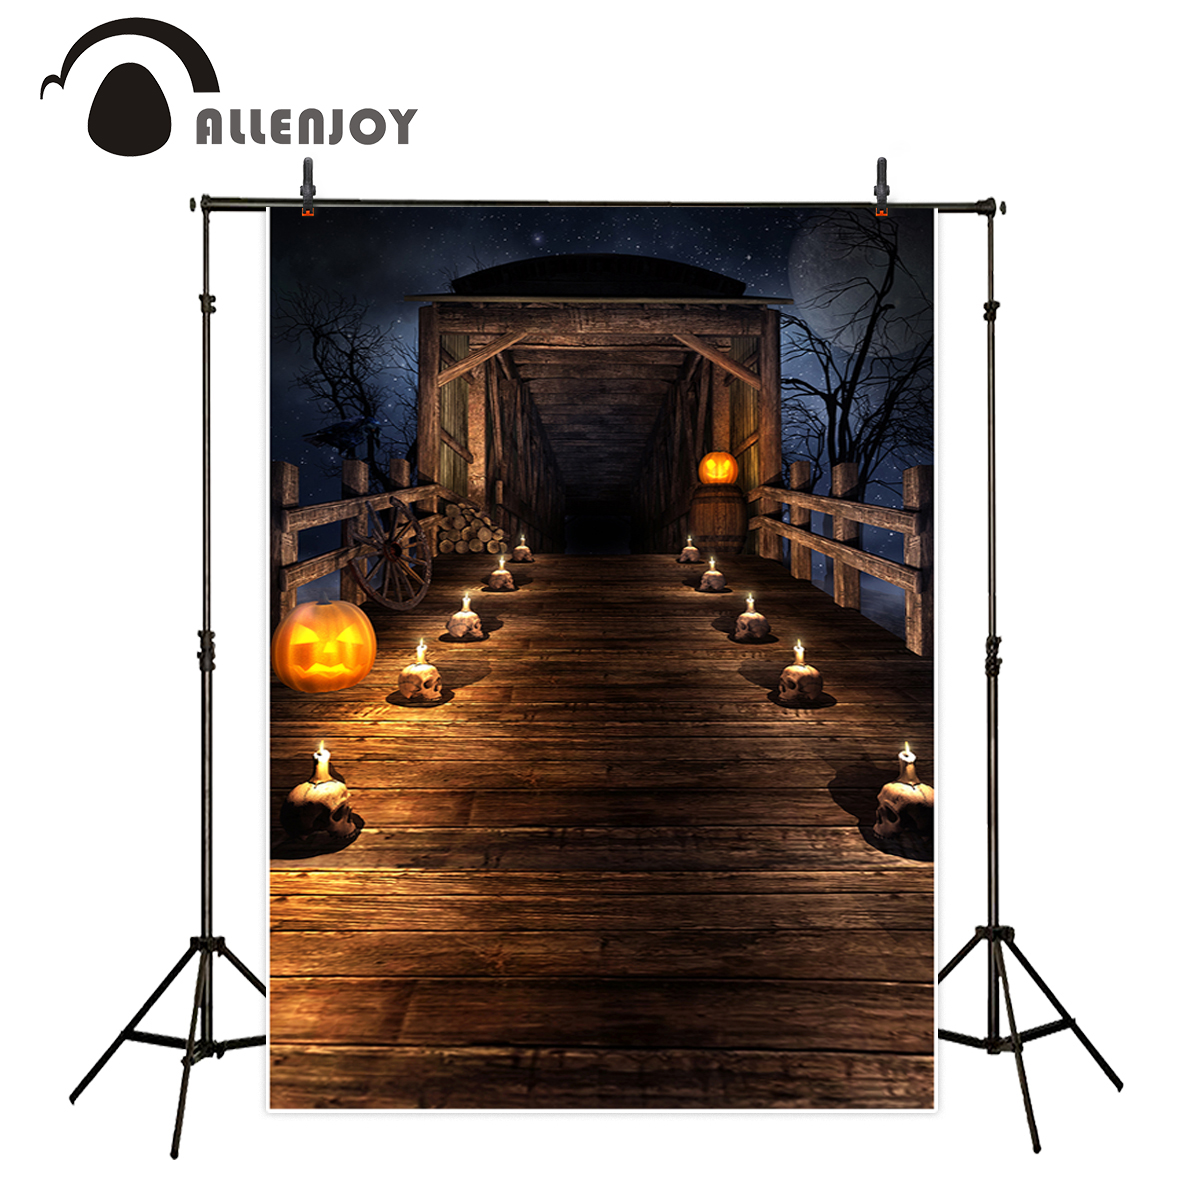 цены Allenjoy backgrounds for photo studio Halloween terror pumpkin wood bridge night backdrop photocall customize fantasy props